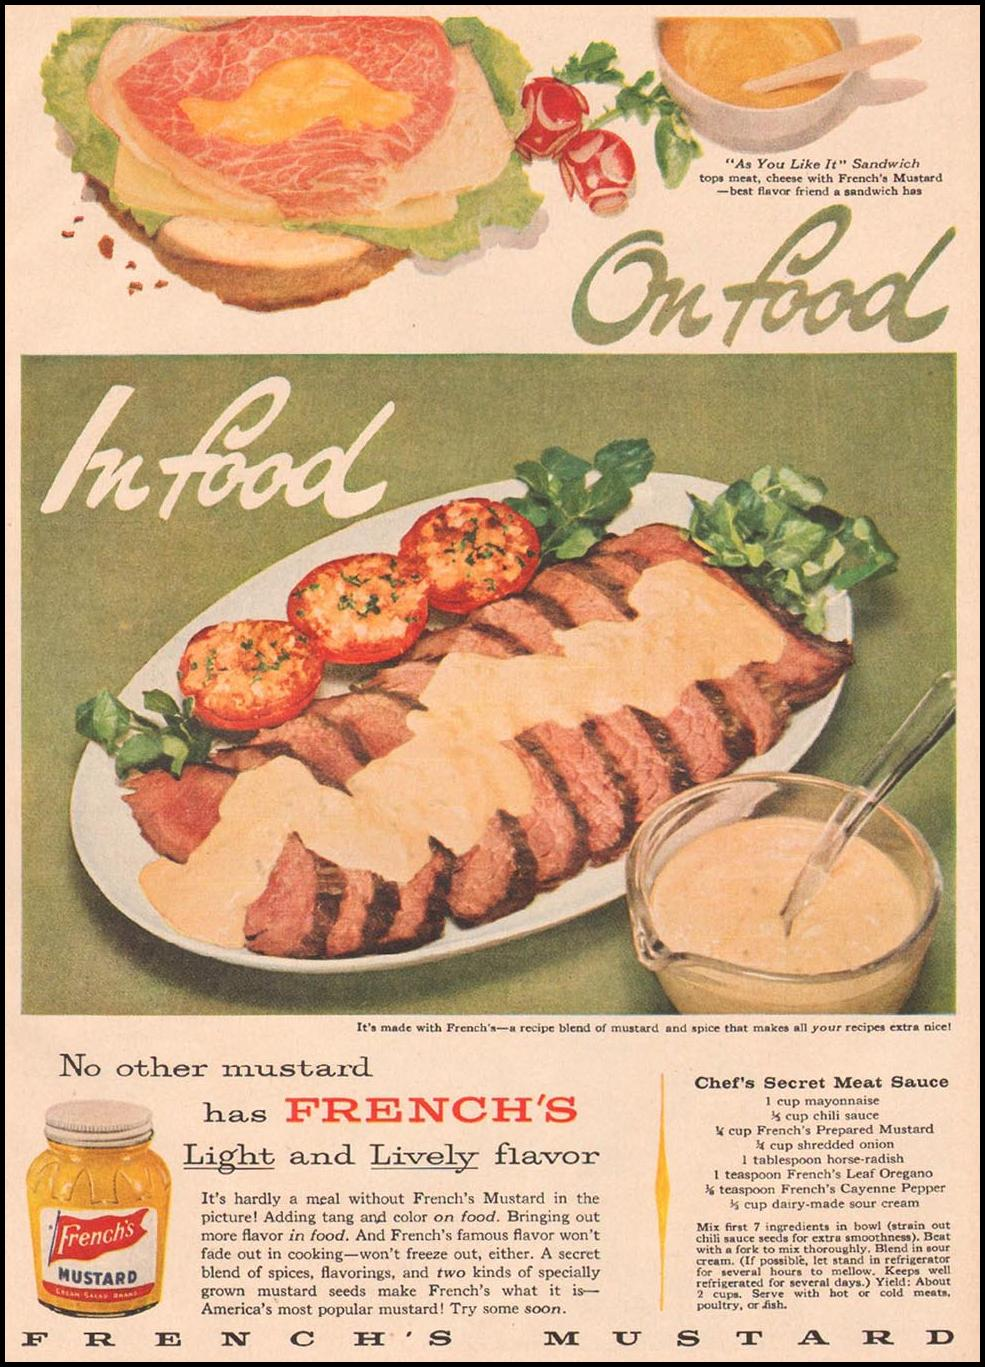 FRENCH'S PREPARED MUSTARD GOOD HOUSEKEEPING 05/01/1957 p. 139